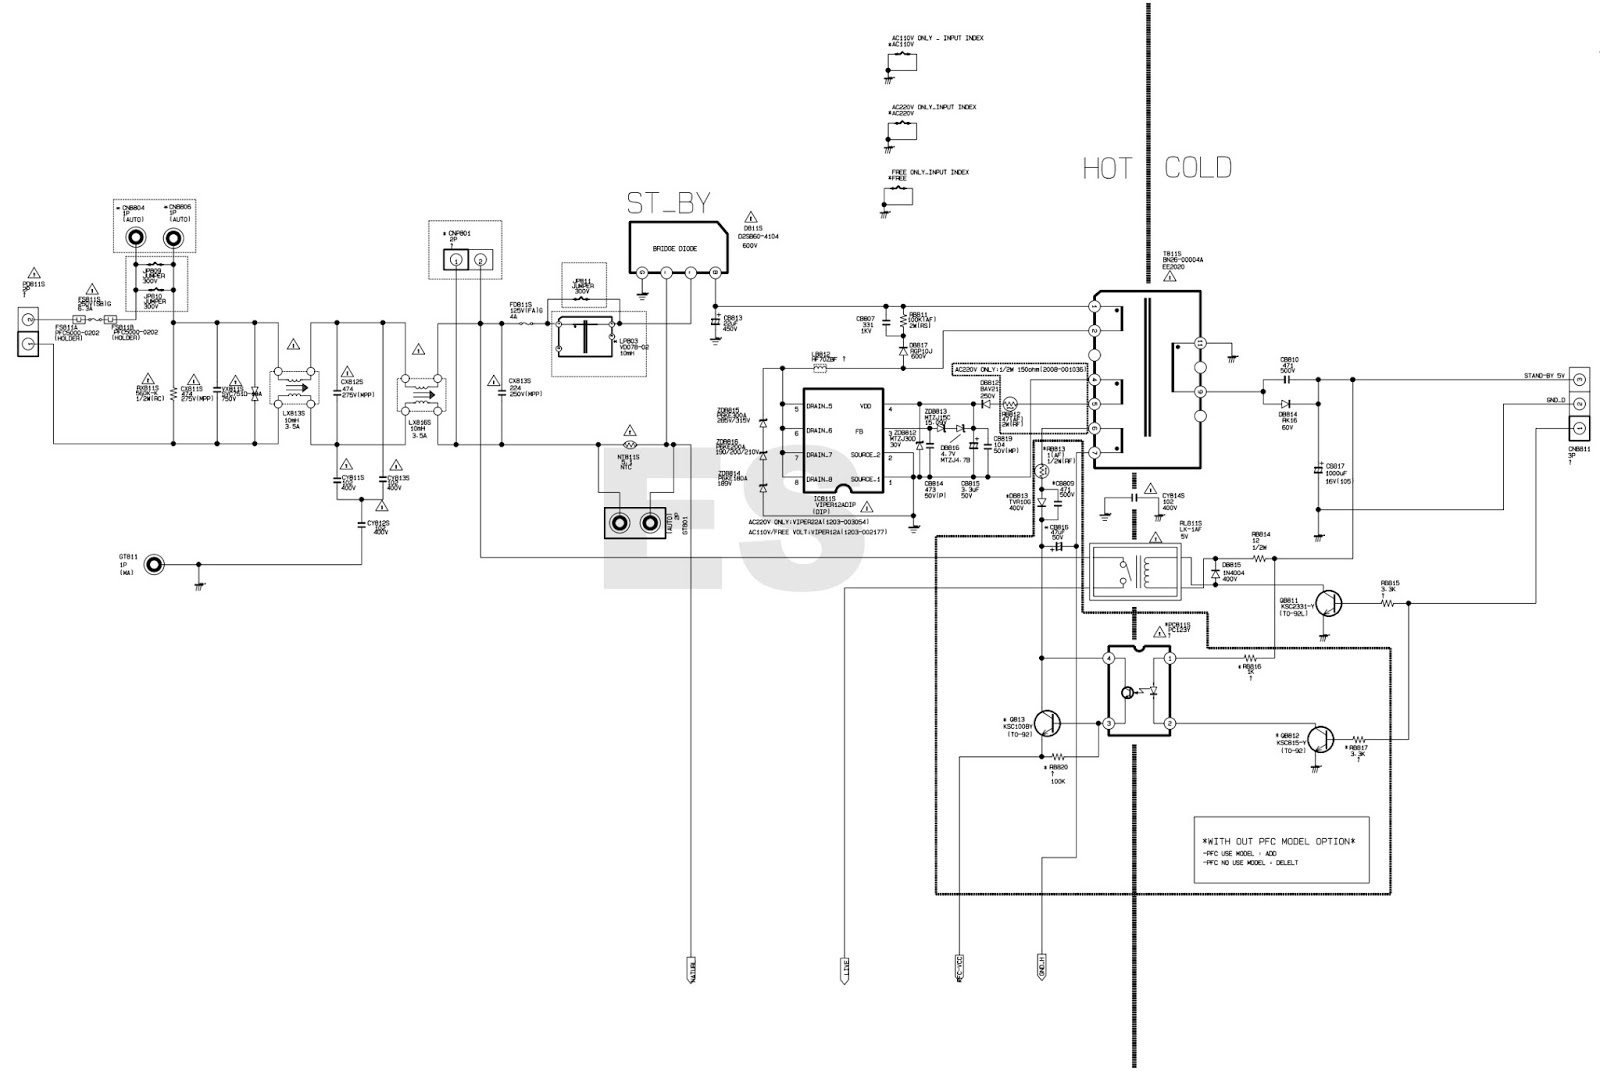 small resolution of firmware download samsung bn44 00622b power supply board schematic diagram viper12a str